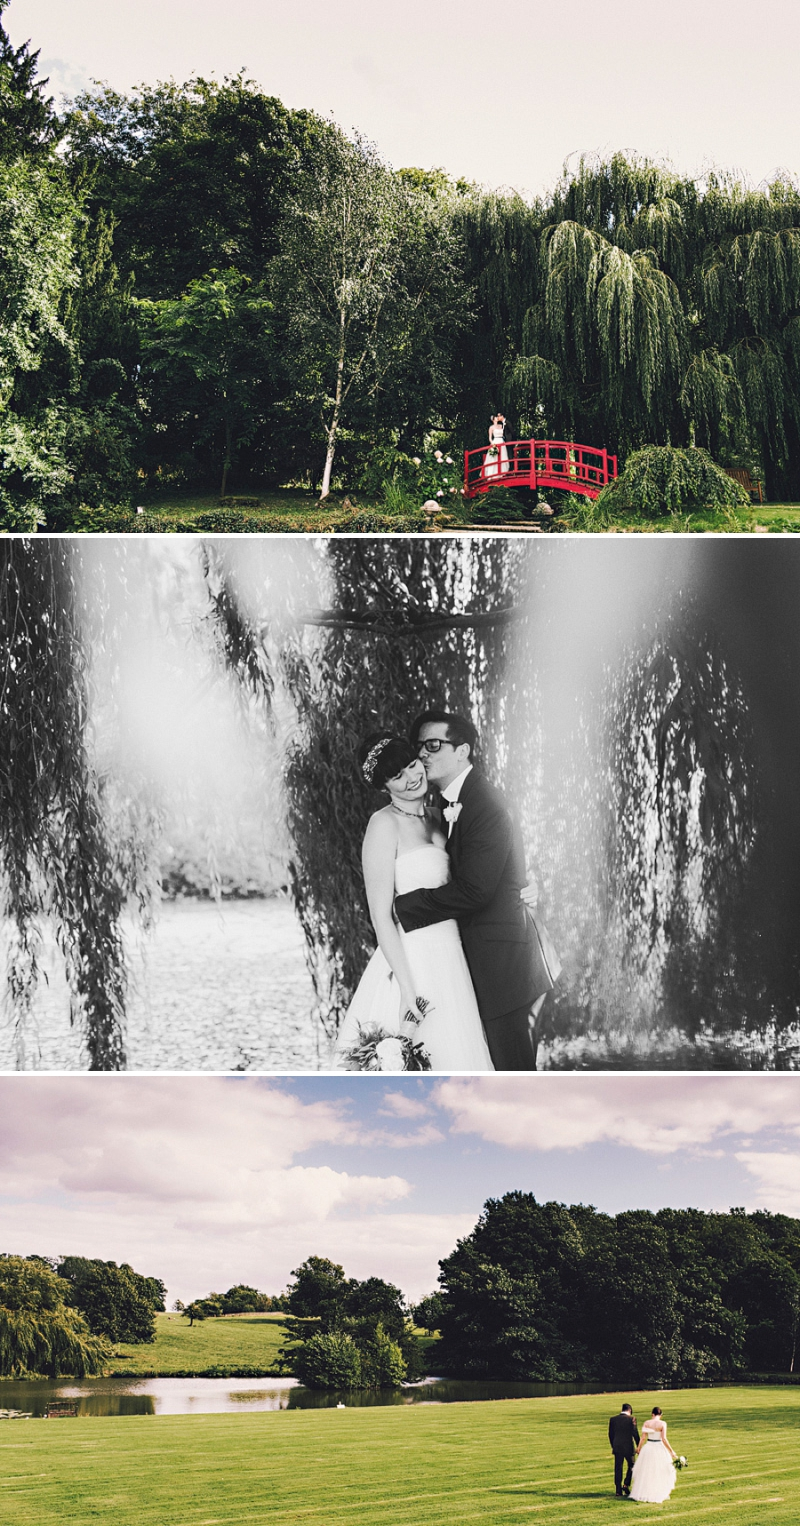 An alternative wedding with bespoke wedding dress and home made blue bridesmaids gowns. outdoor venue with rustic garden games and reception teepee. Photography by Steve Gerrard_0011